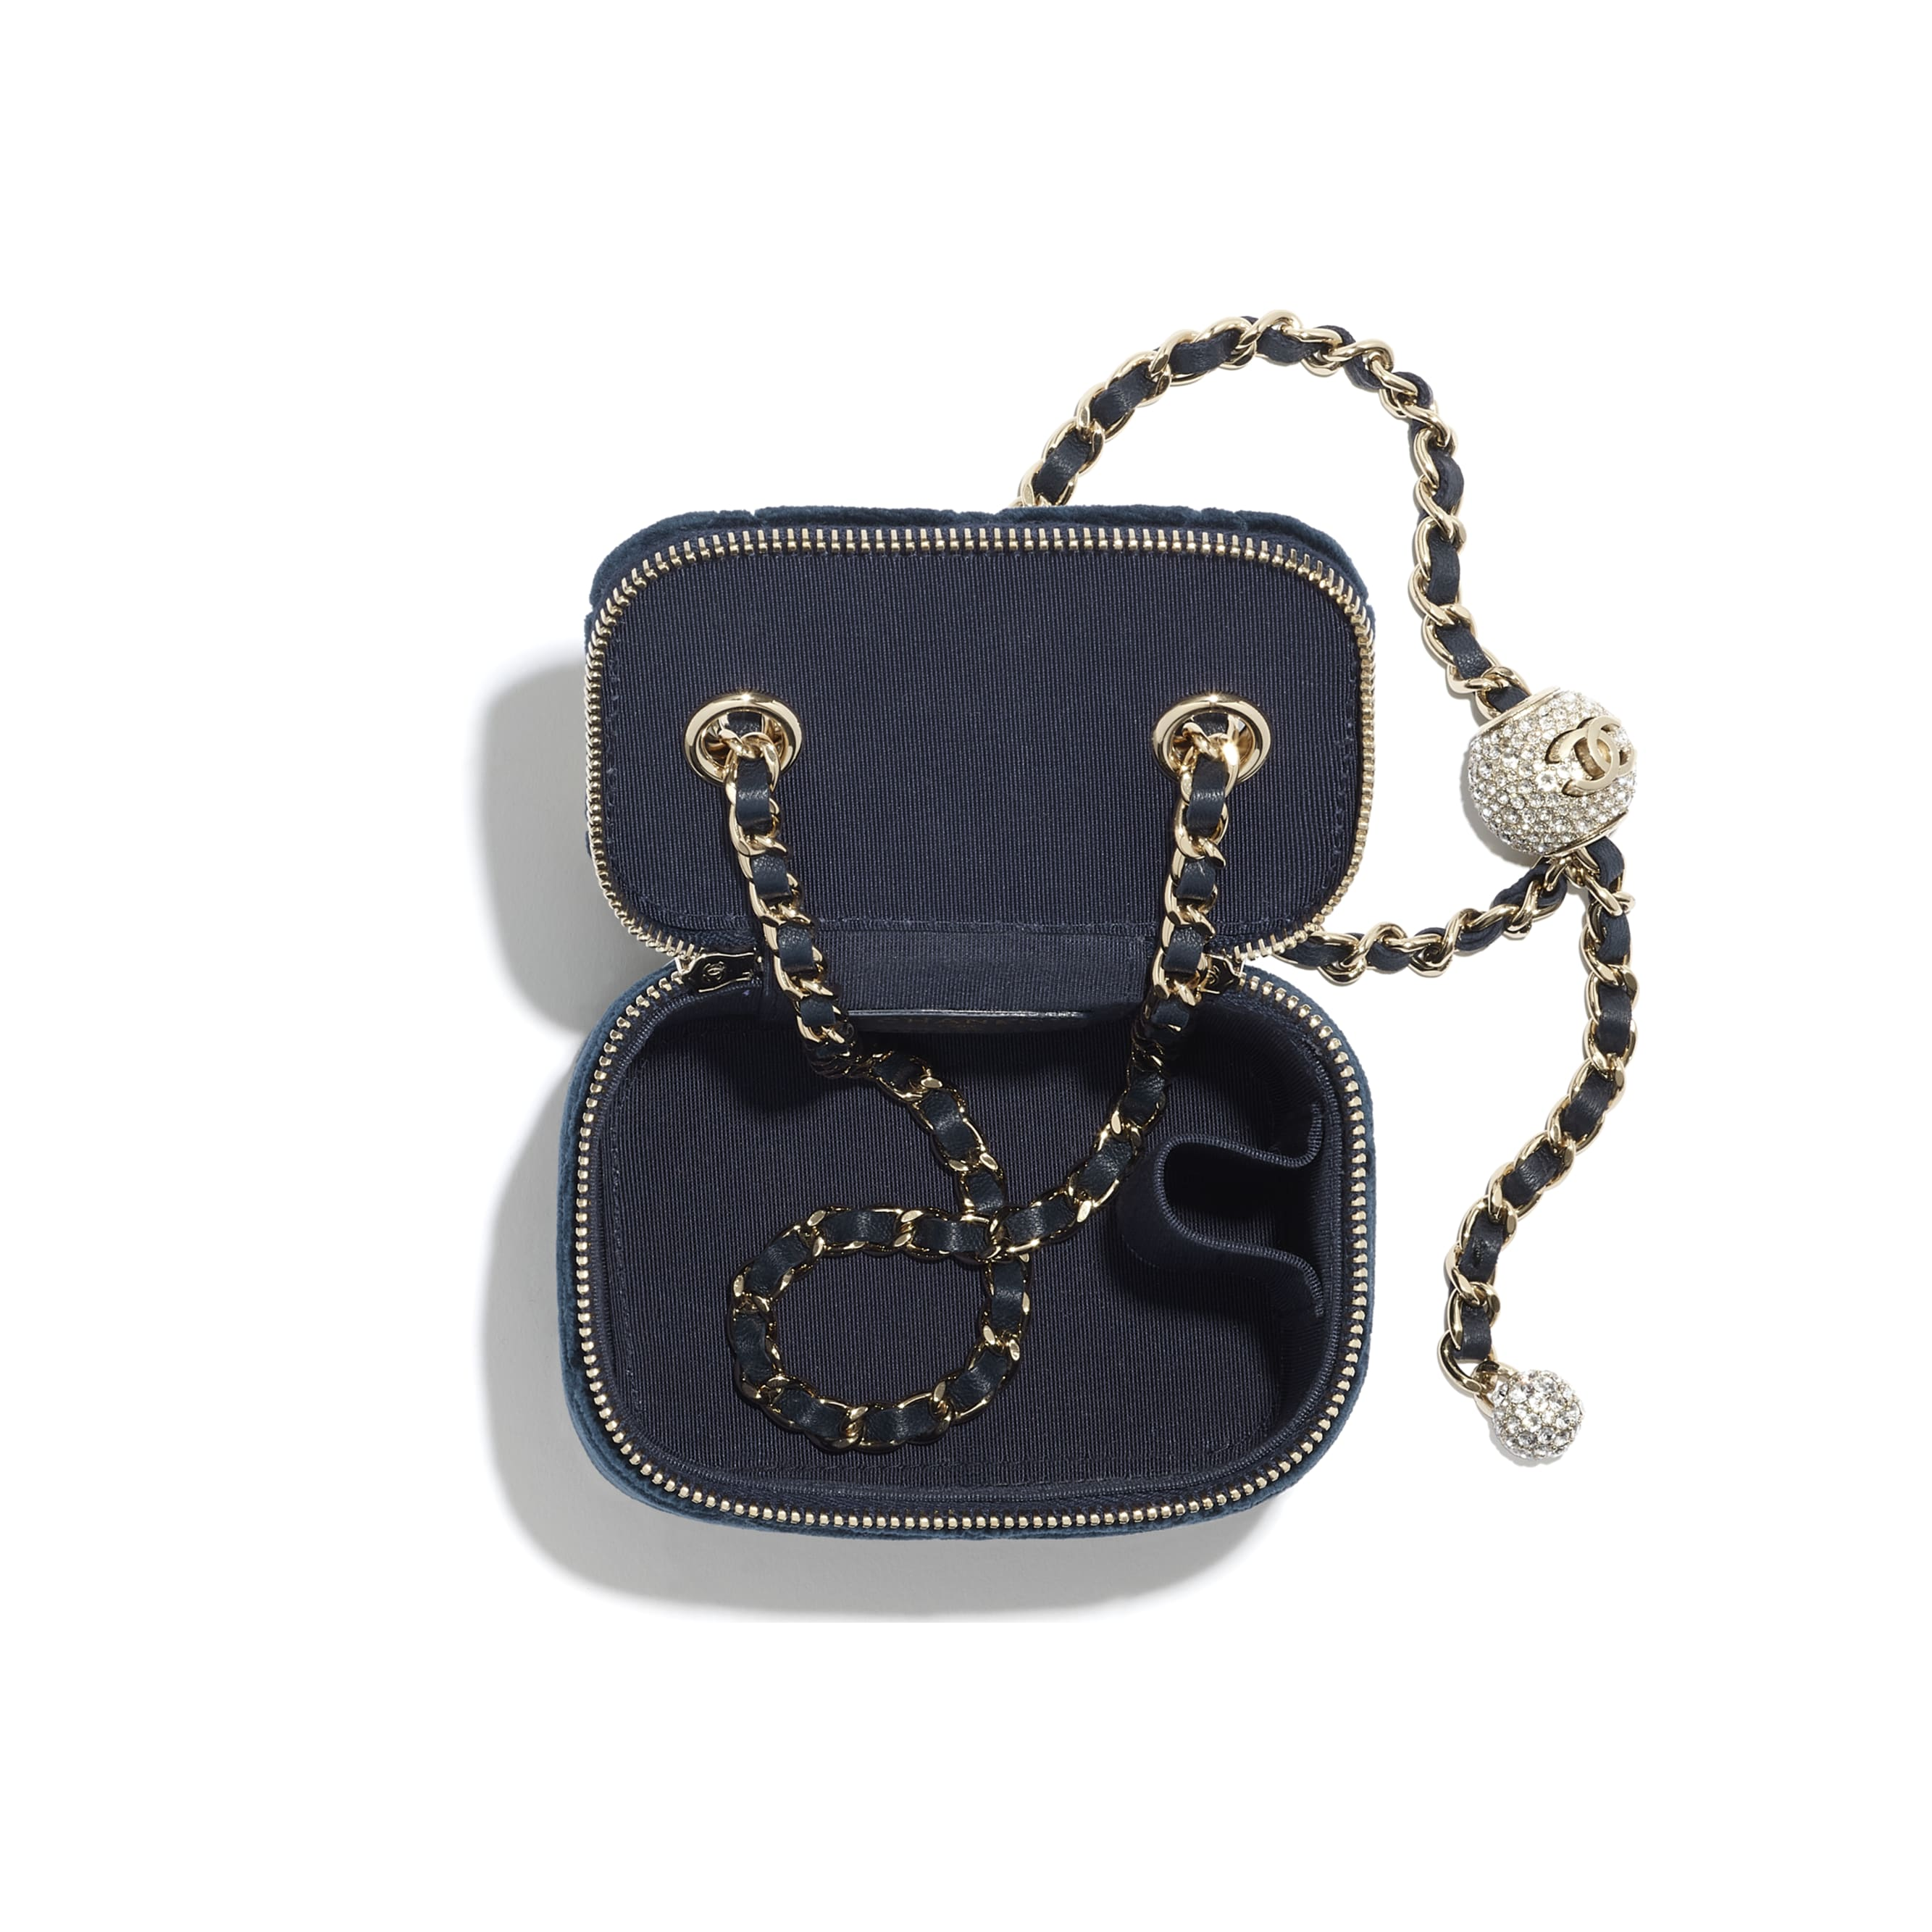 Small Classic Box with Chain - Navy Blue - Velvet, Diamanté & Silver-Tone Metal - CHANEL - Other view - see standard sized version